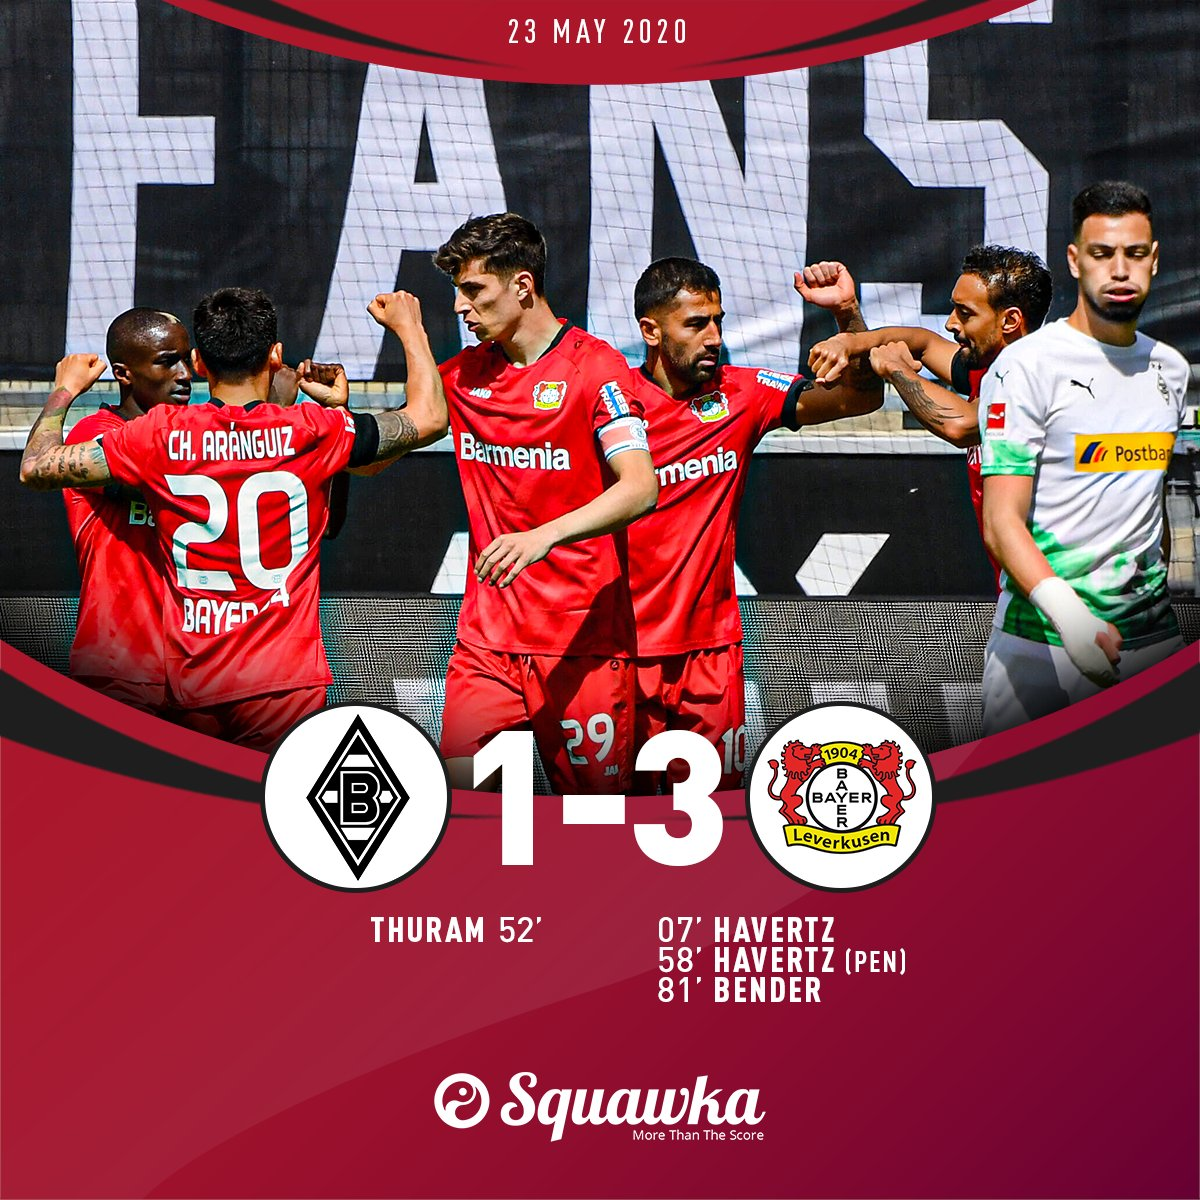 ↑ Bayer Leverkusen ↓ Borussia Mönchengladbach ↓ RB Leipzig Petr Boszs side move up to third in the Bundesliga thanks to another superb display from Kai Havertz and co.